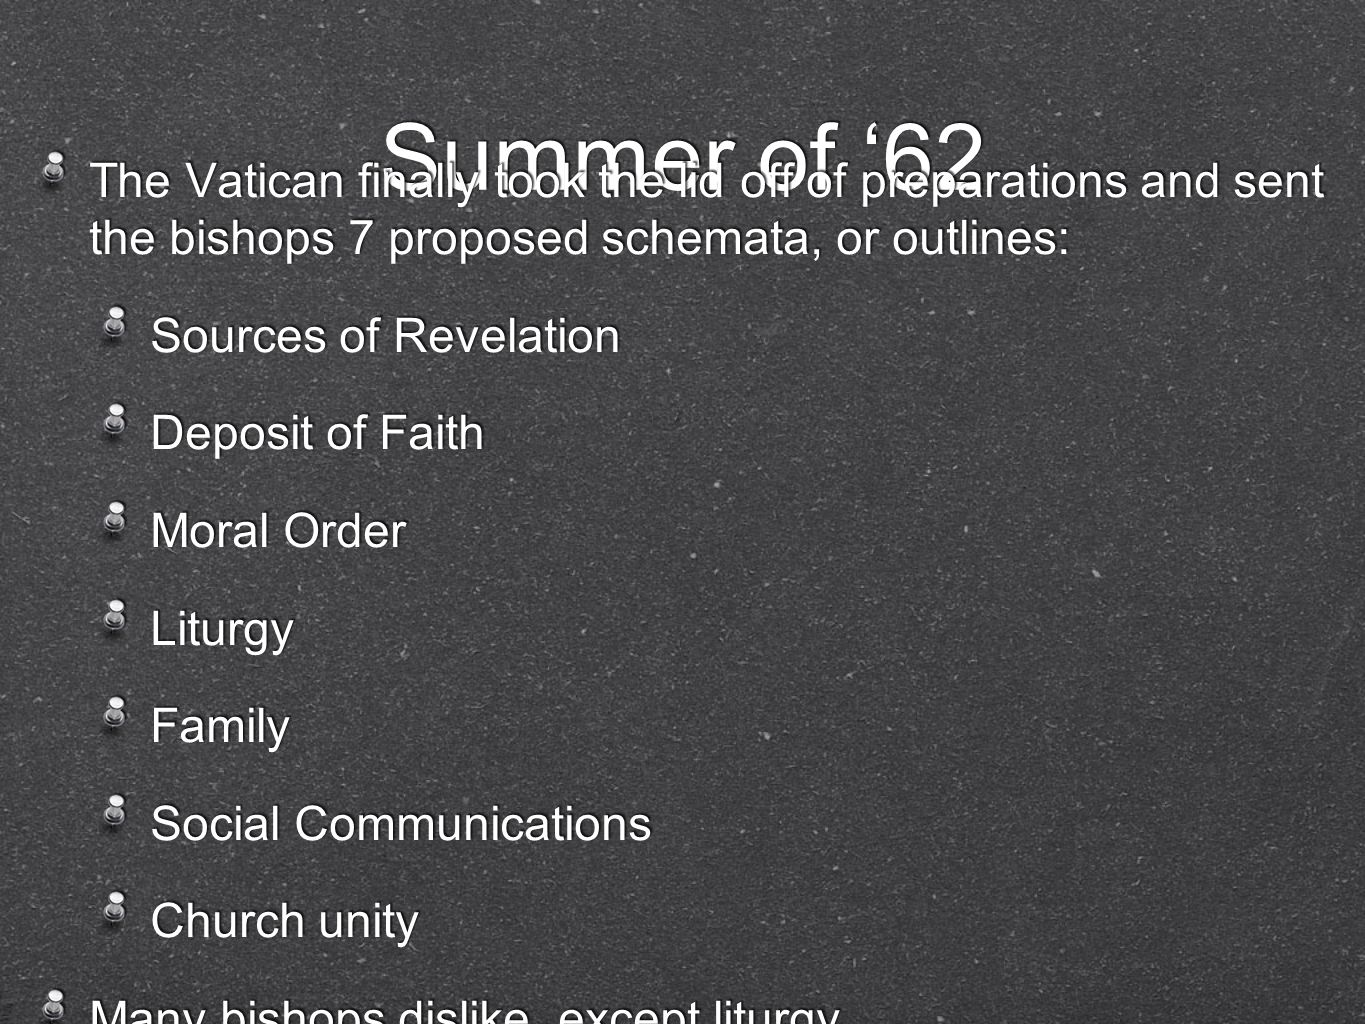 Summer of 62 The Vatican finally took the lid off of preparations and sent the bishops 7 proposed schemata, or outlines: Sources of Revelation Deposit